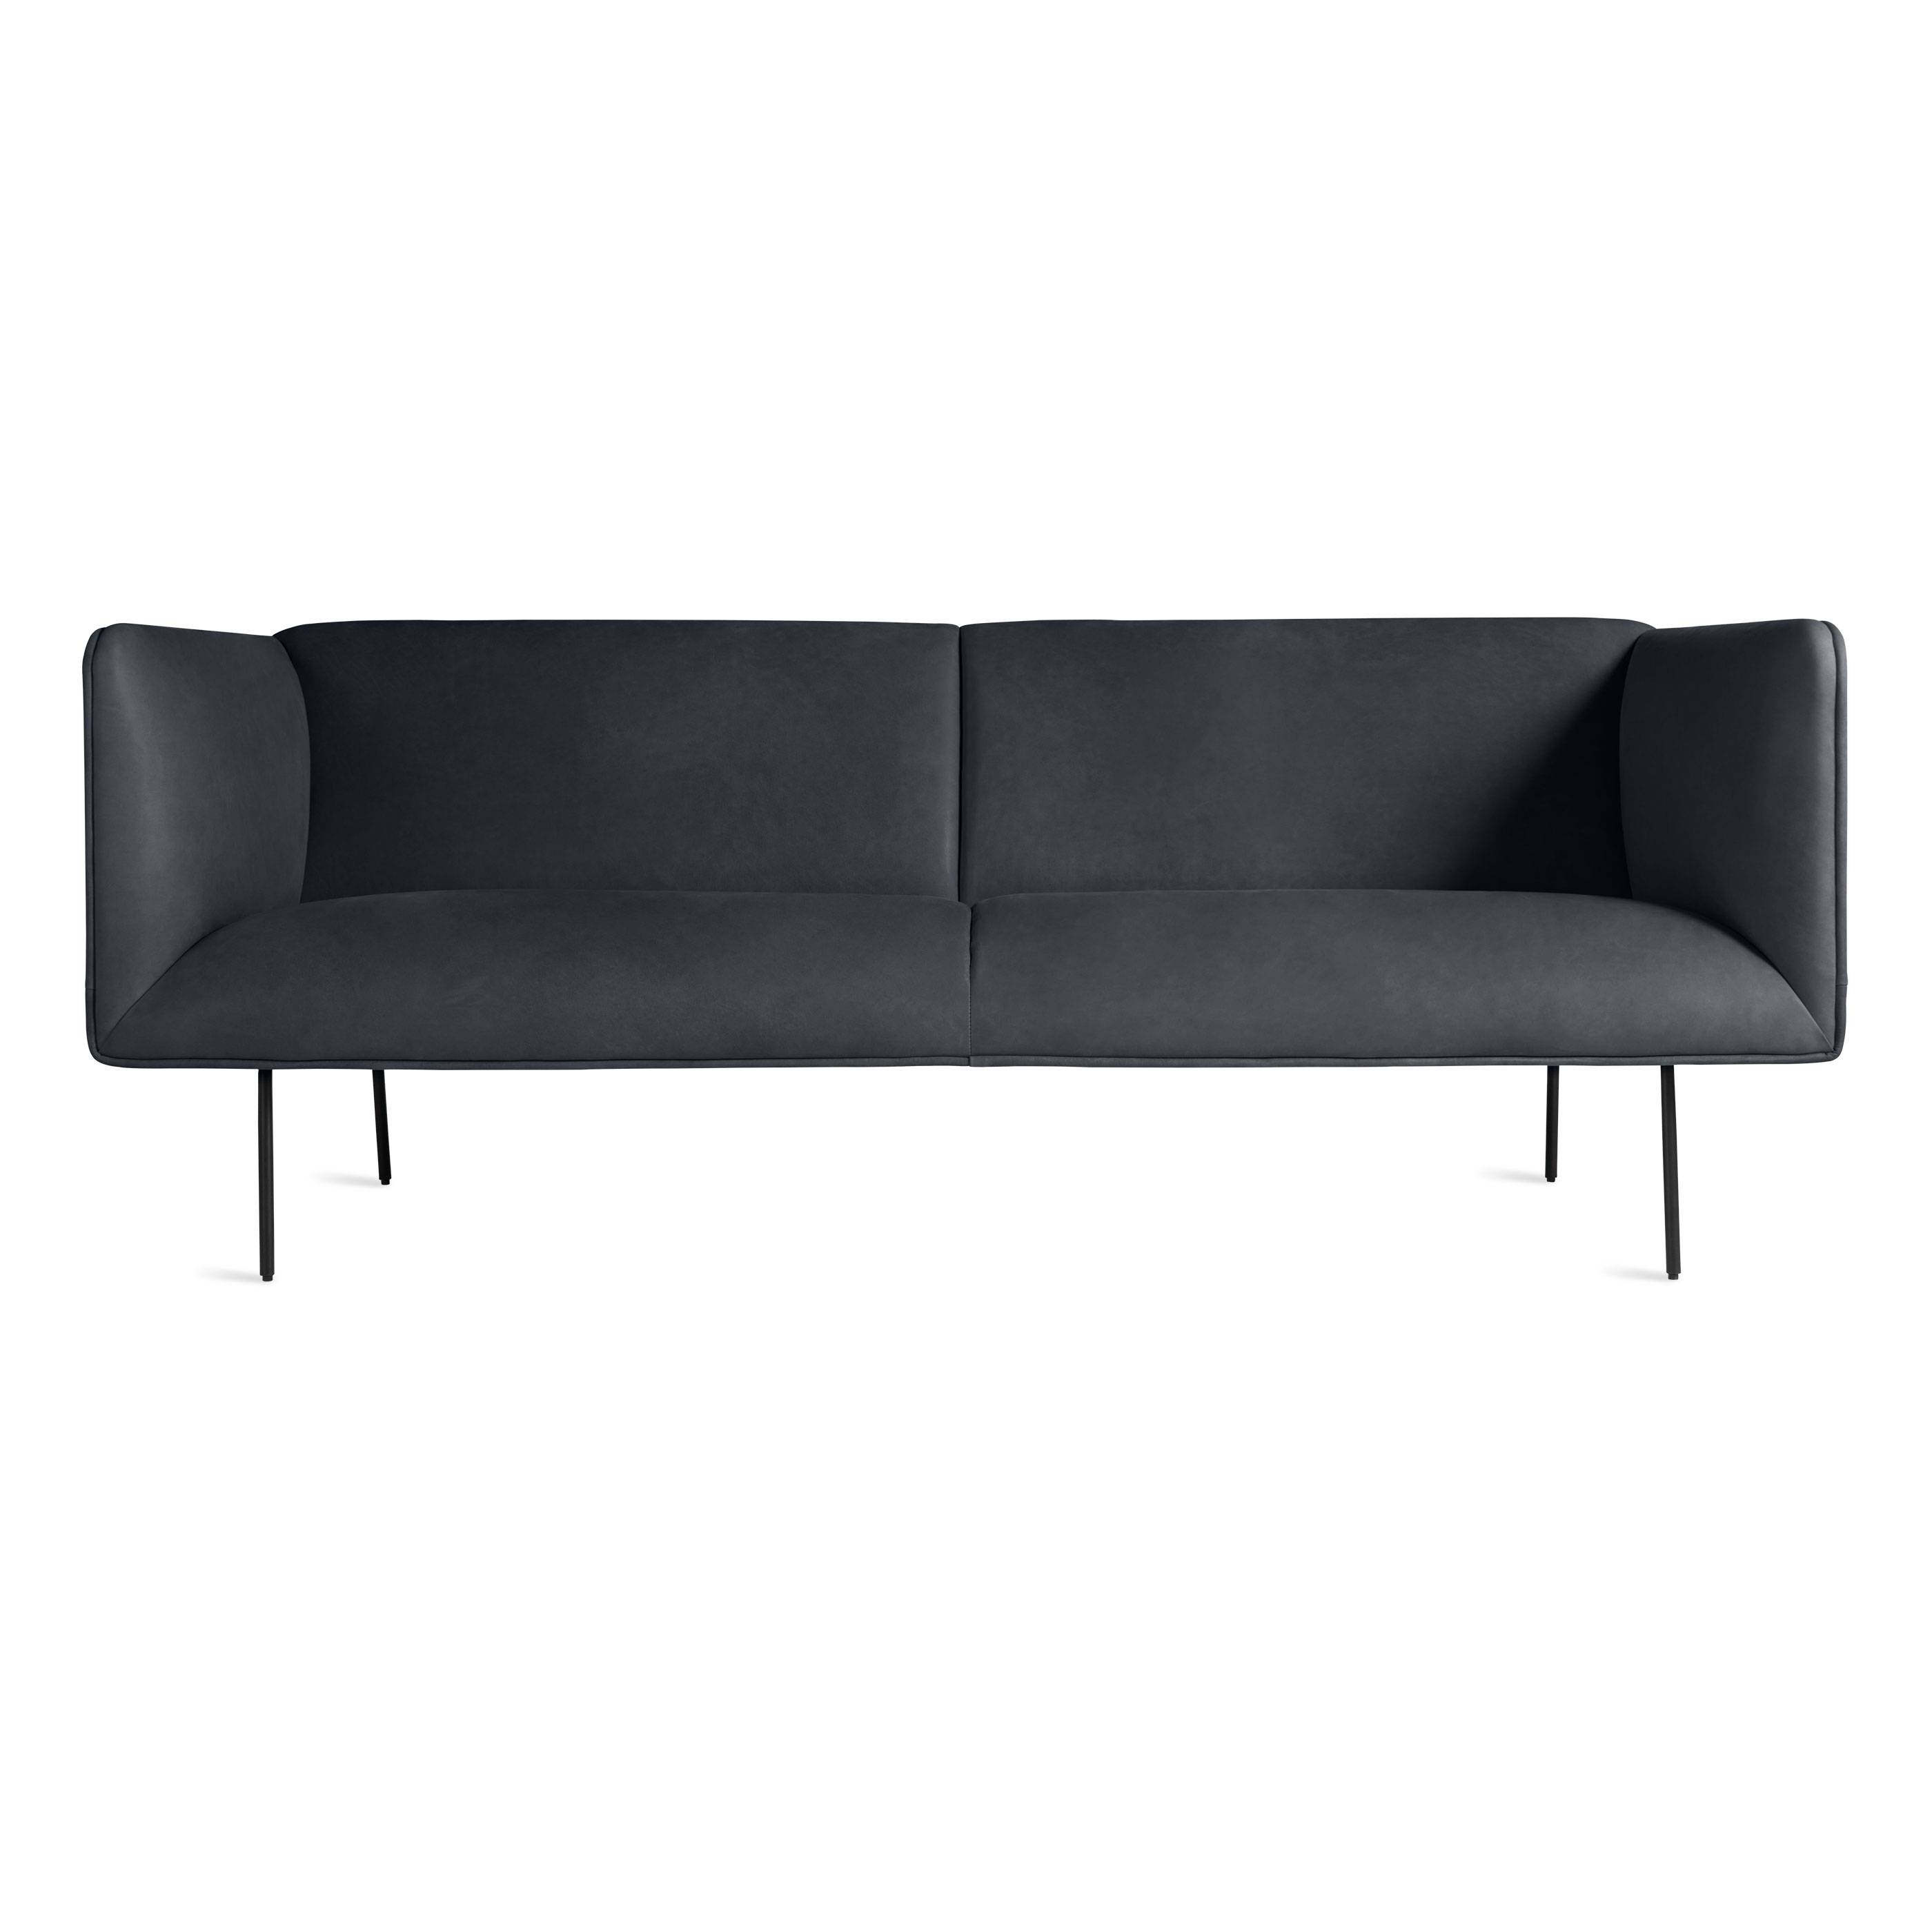 "Dandy 86"" Leather Sofa - Modern Fabric Sofa 